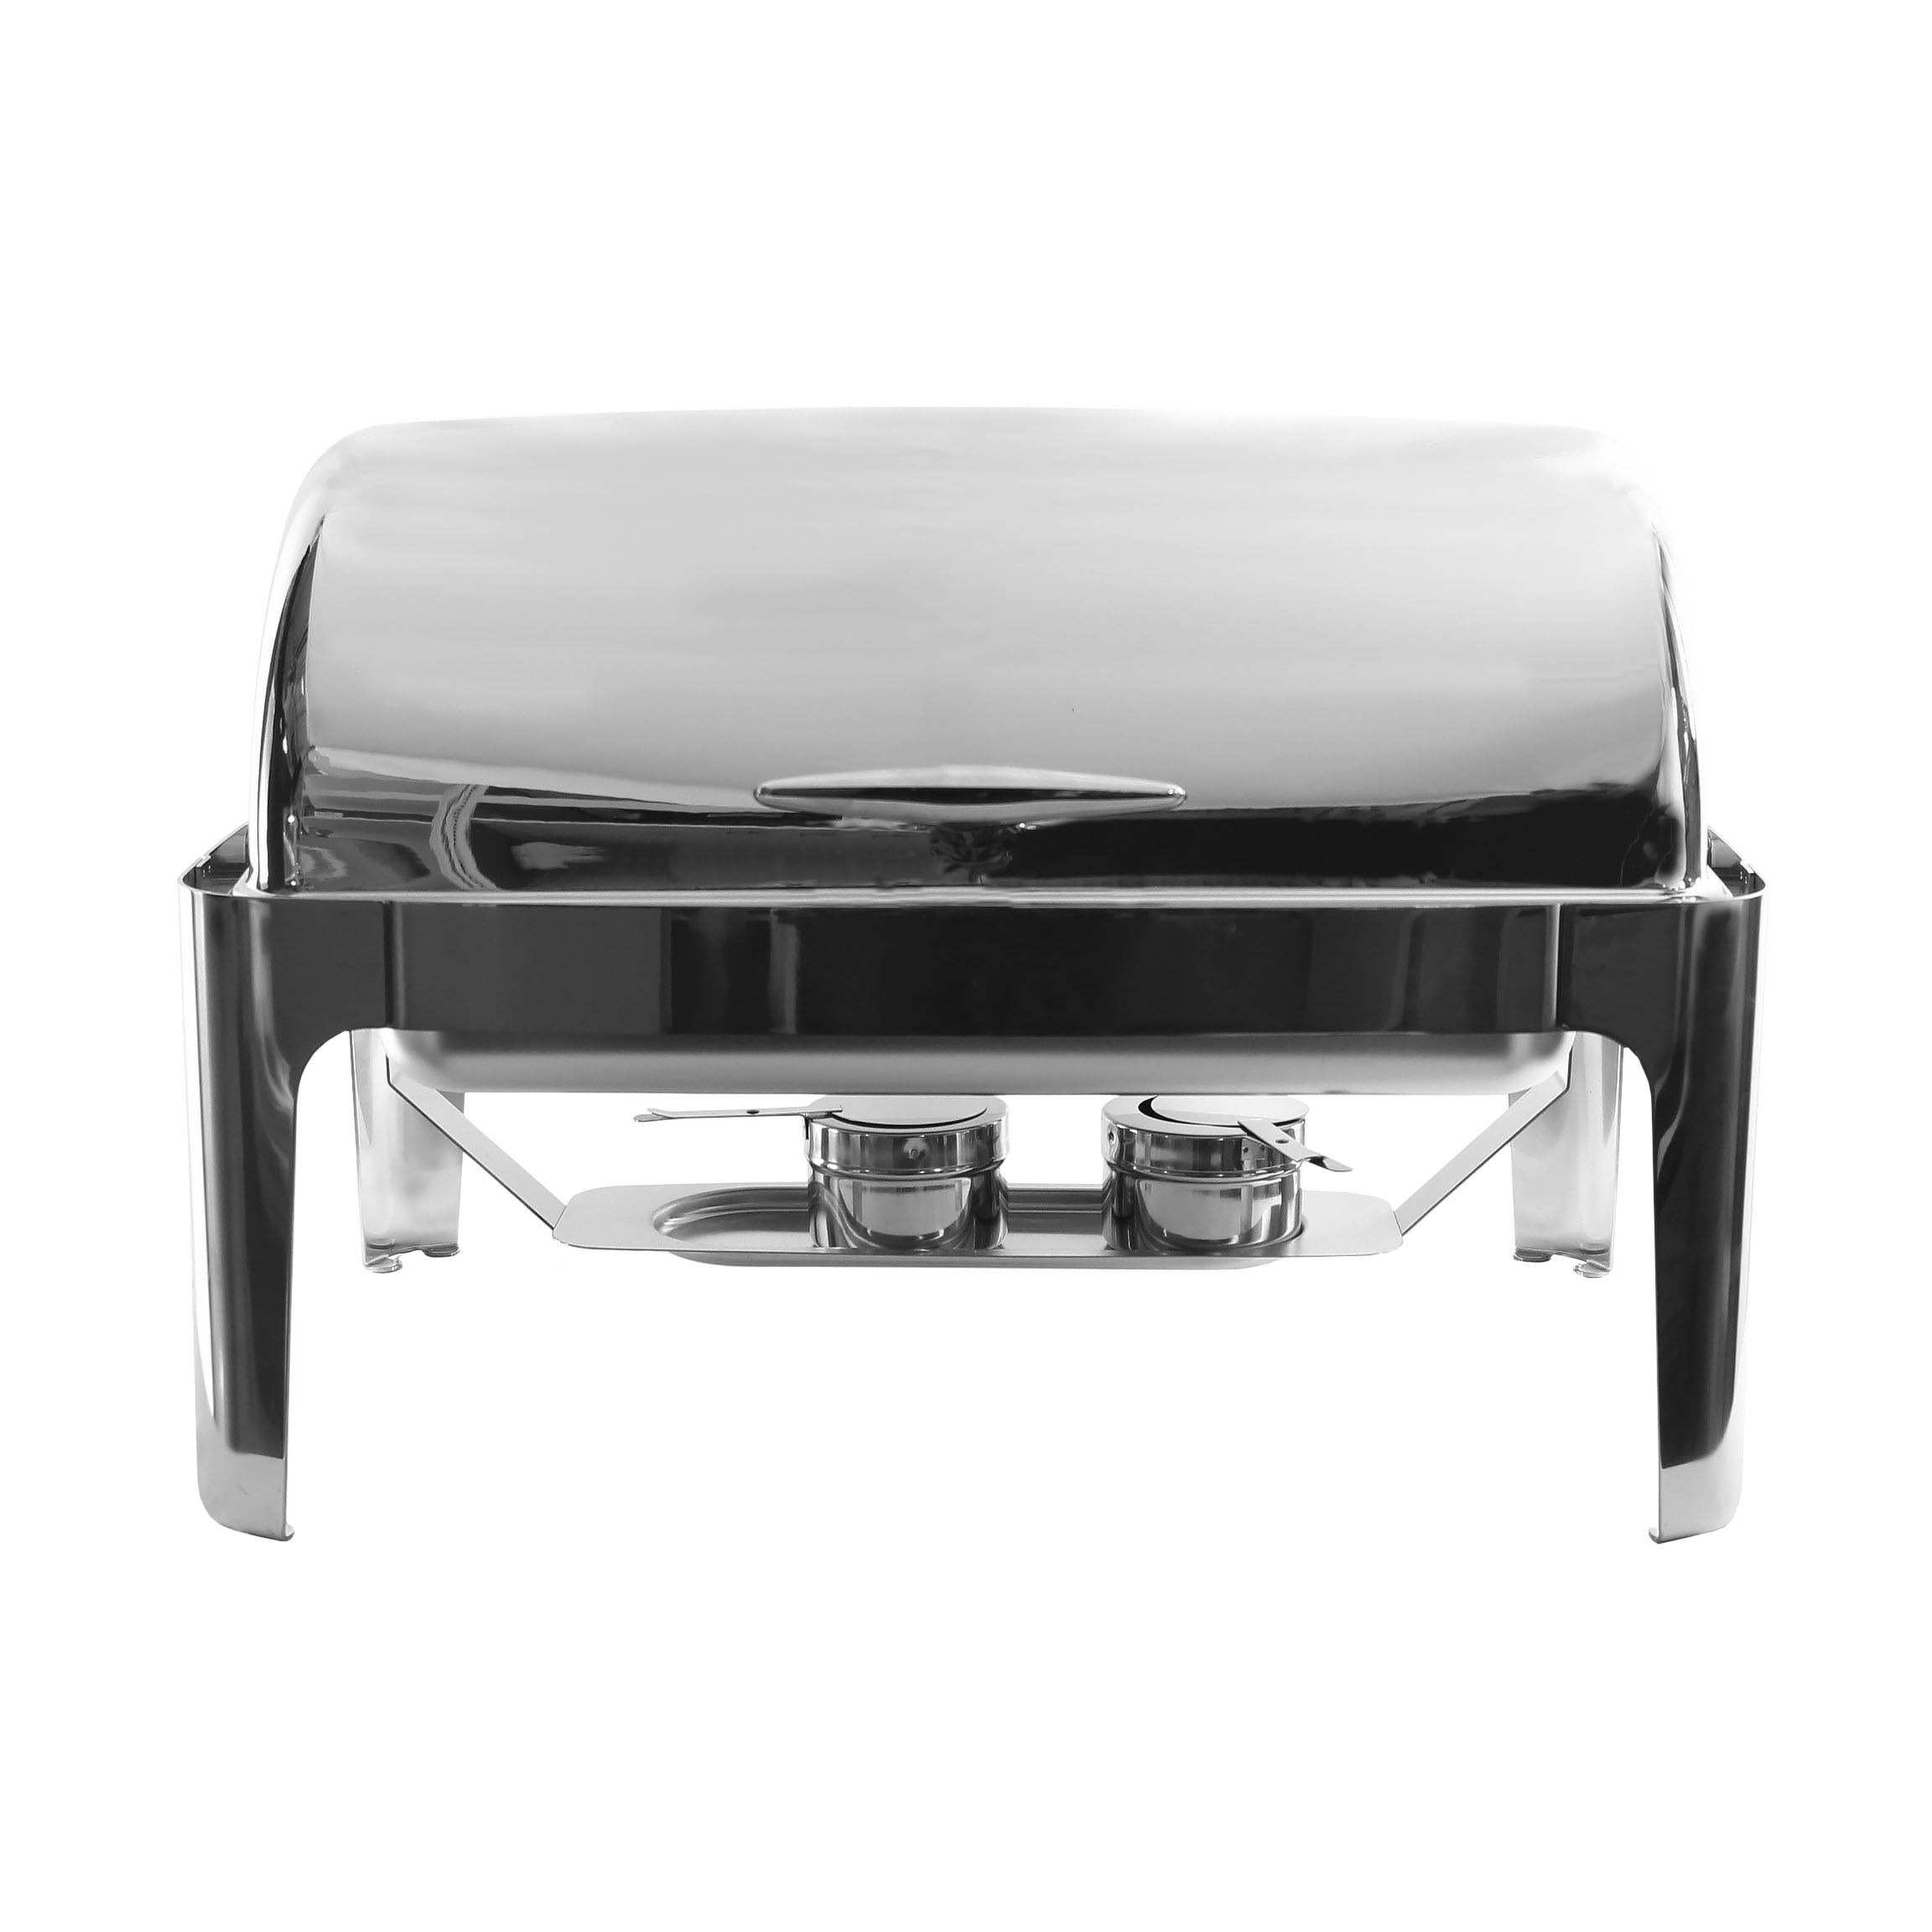 Chafer 8qt Roll Top Stainless